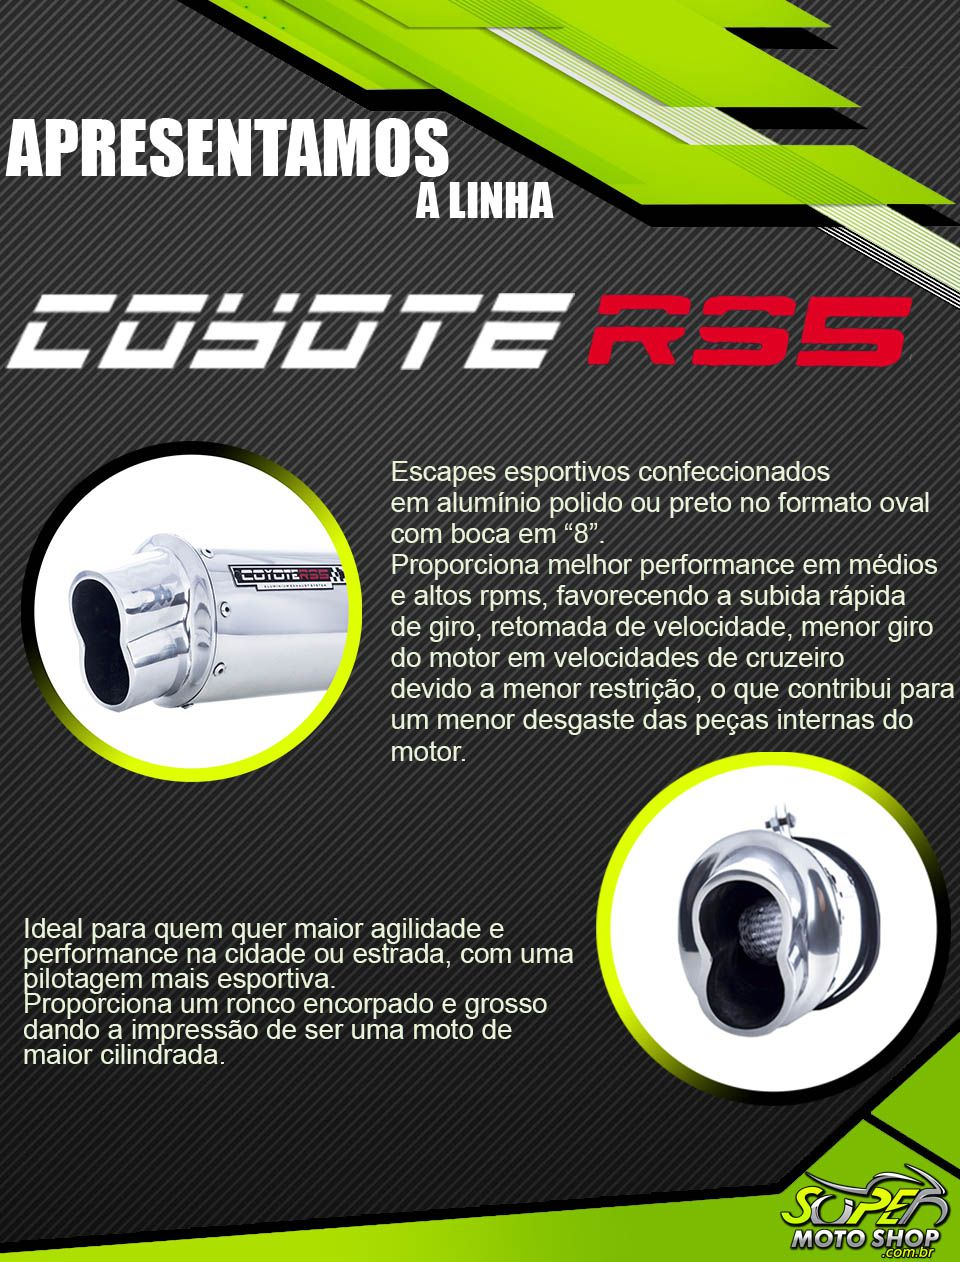 Escape / Ponteira Coyote RS5 Boca 8 Aluminio Oval - Twister 250 até 2008 - Honda